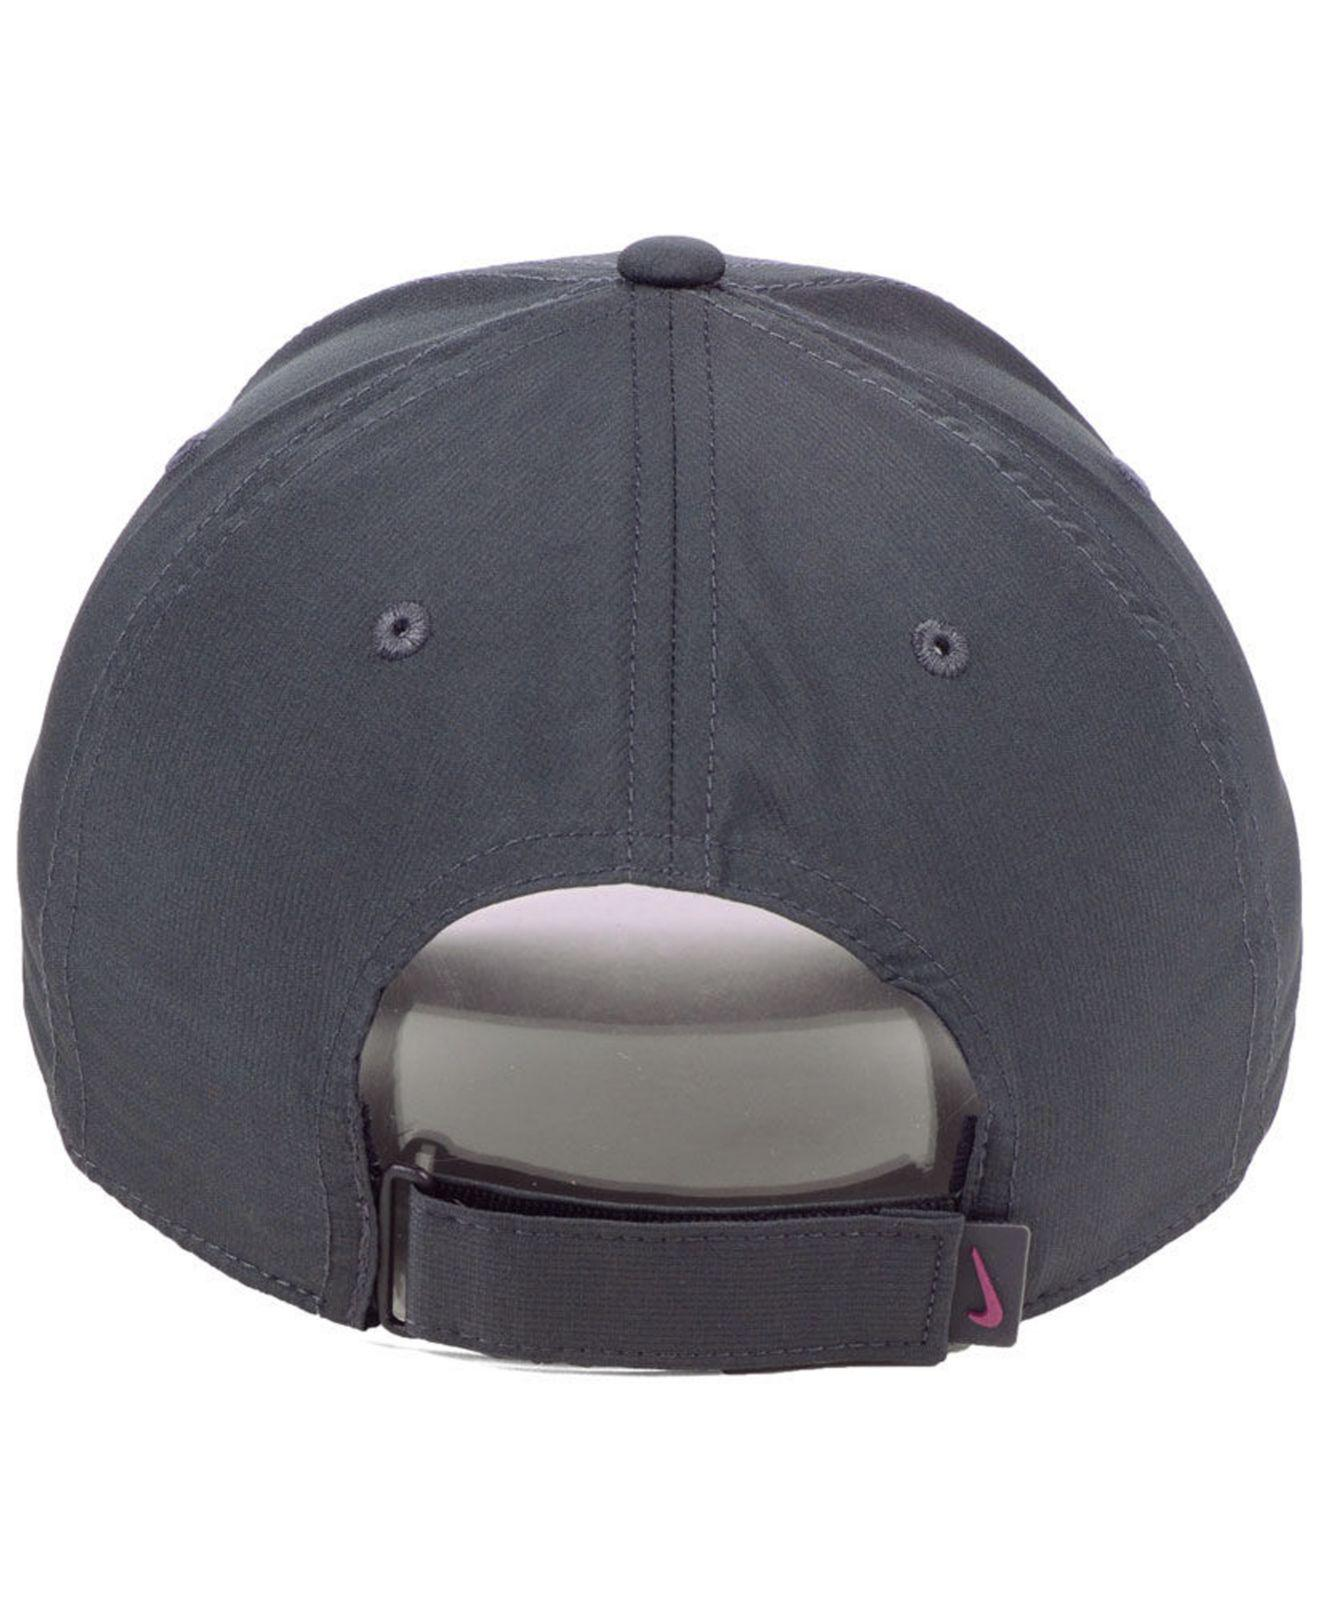 uk availability 56bf8 a4b46 ... promo code nike gray minnesota golden gophers dri fit adjustable cap  for men lyst. view